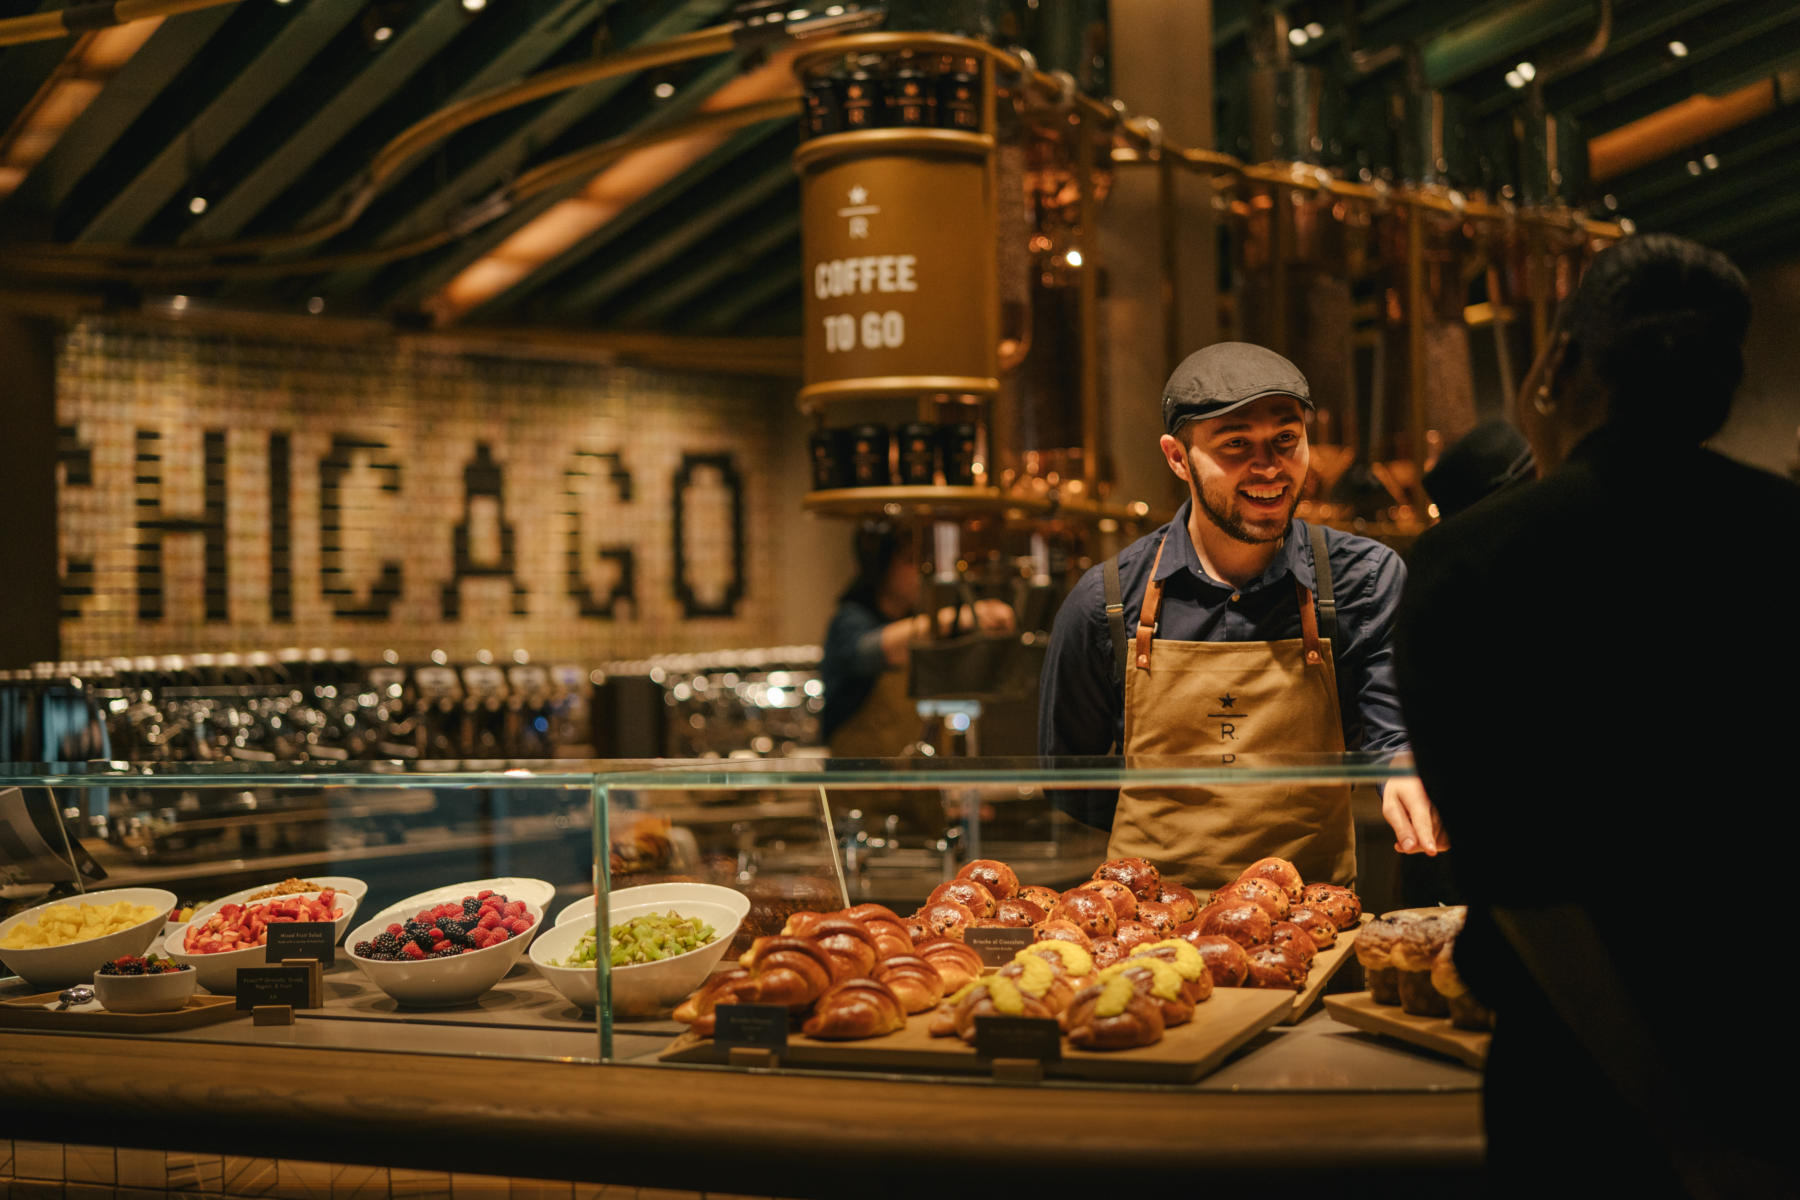 The world's largest Starbucks is now open in Chicago